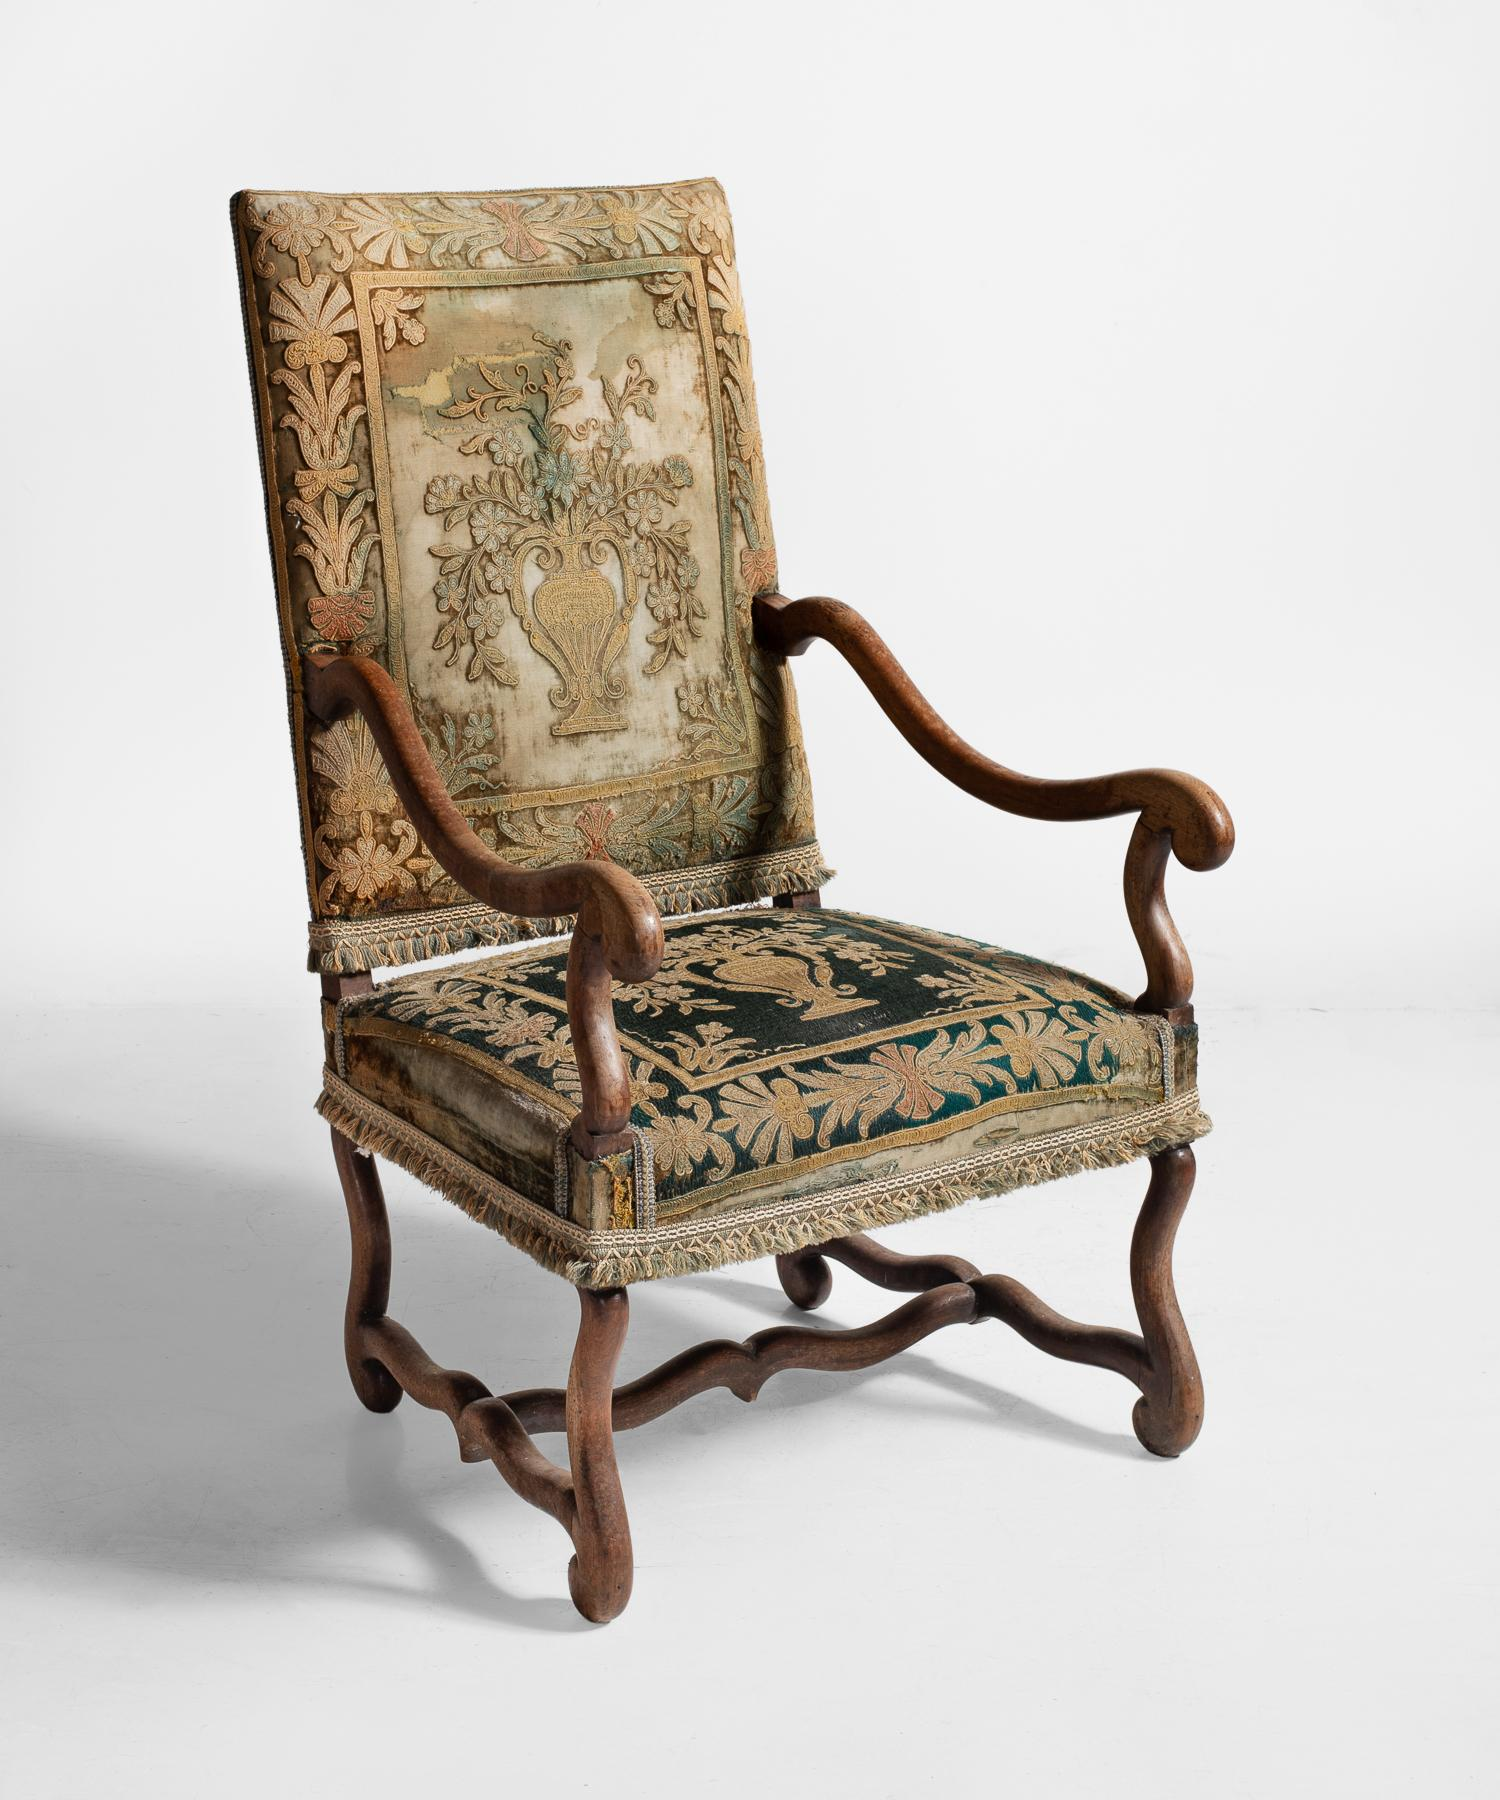 Os De Mouton Tapestry Chair, Circa 1870 Exquisite Embroidered Upholstery  Has Been Reinforced With New